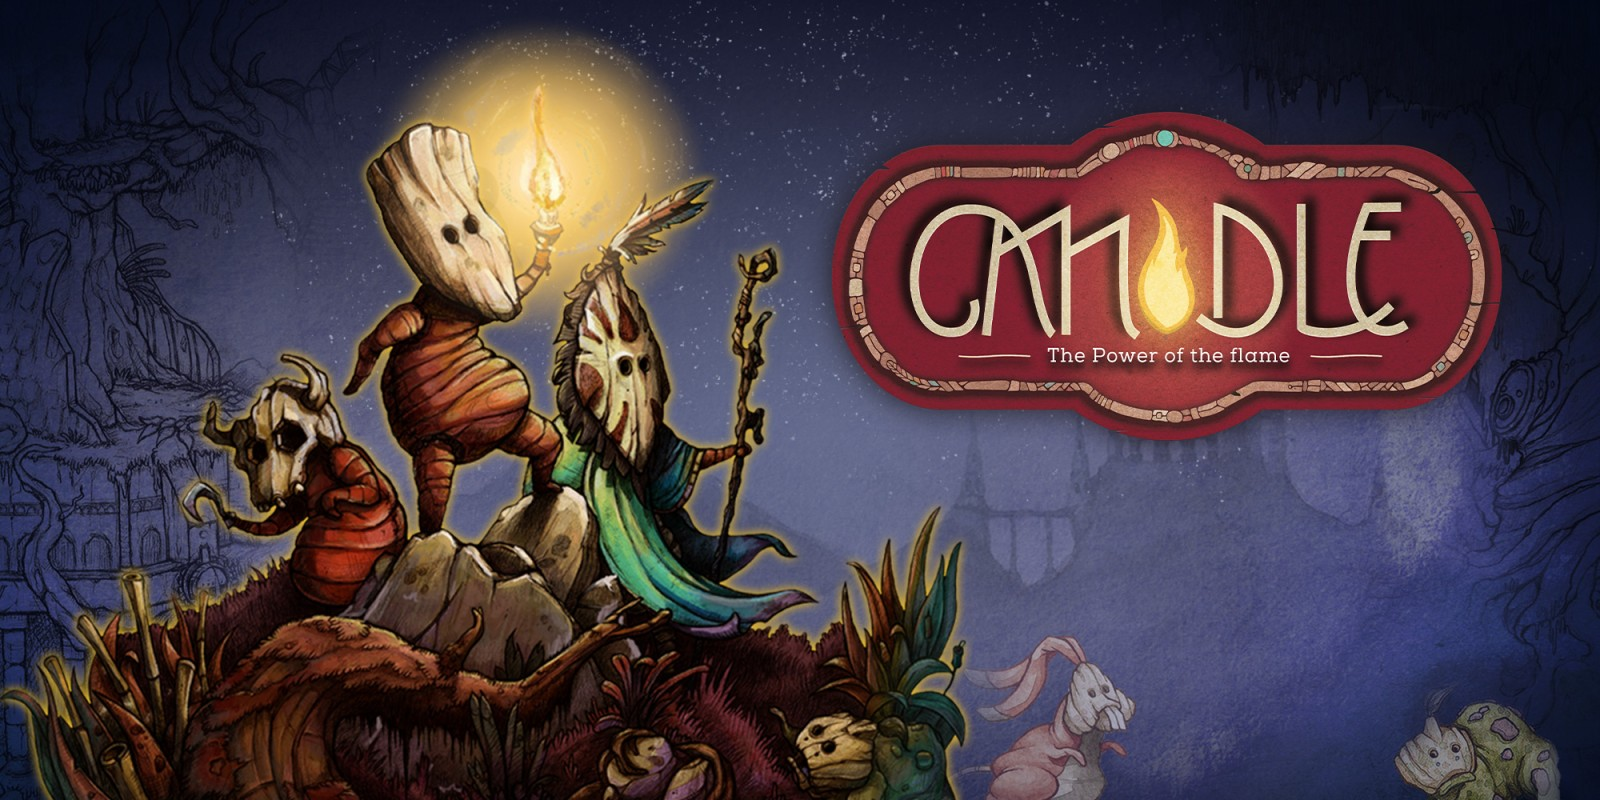 Review - Candle: The Power of the Flame